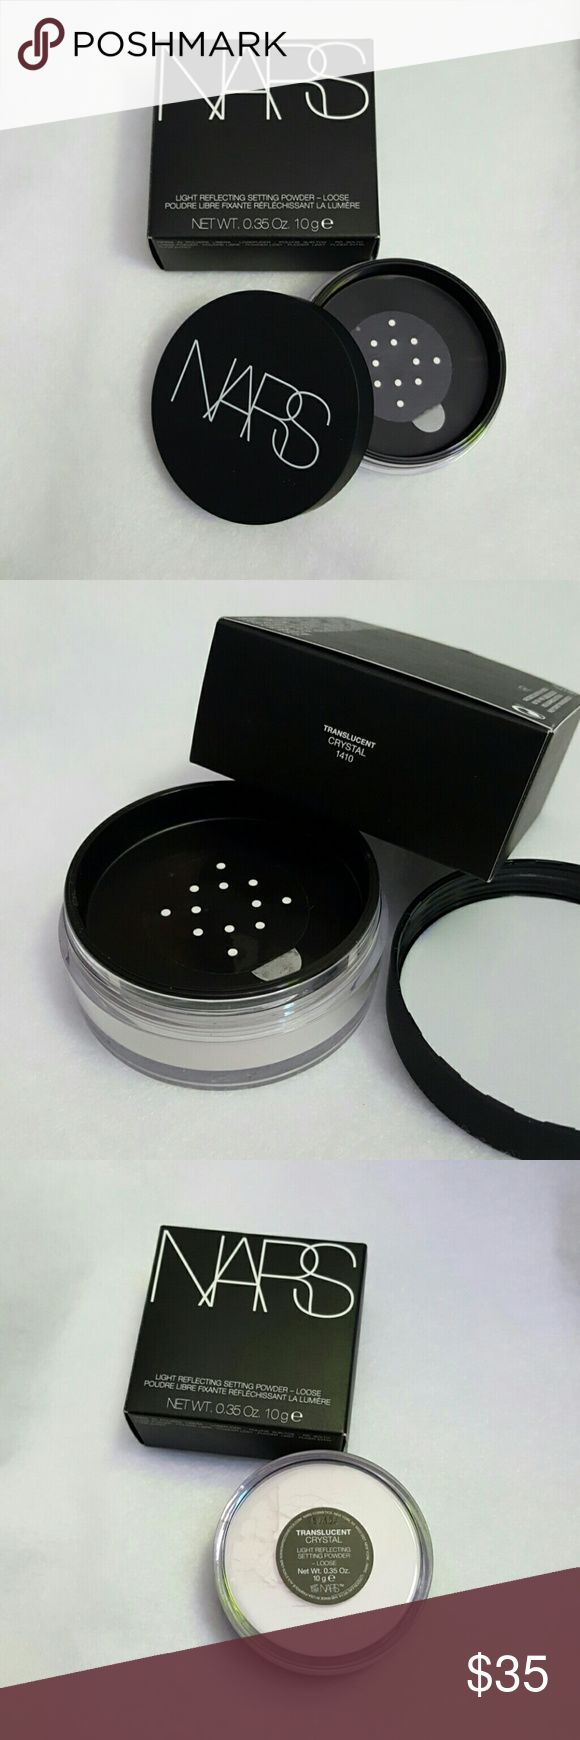 NARS Light-Reflecting Loose Setting Powder Are you a NARS girl? Then this is the perfect setting powder for you to use with your luminous foundation, weighless foyndation, Orgasm Collection, Audacious Lips etc. Bundle and get 20% off your entire purchase. NARS Makeup Face Powder